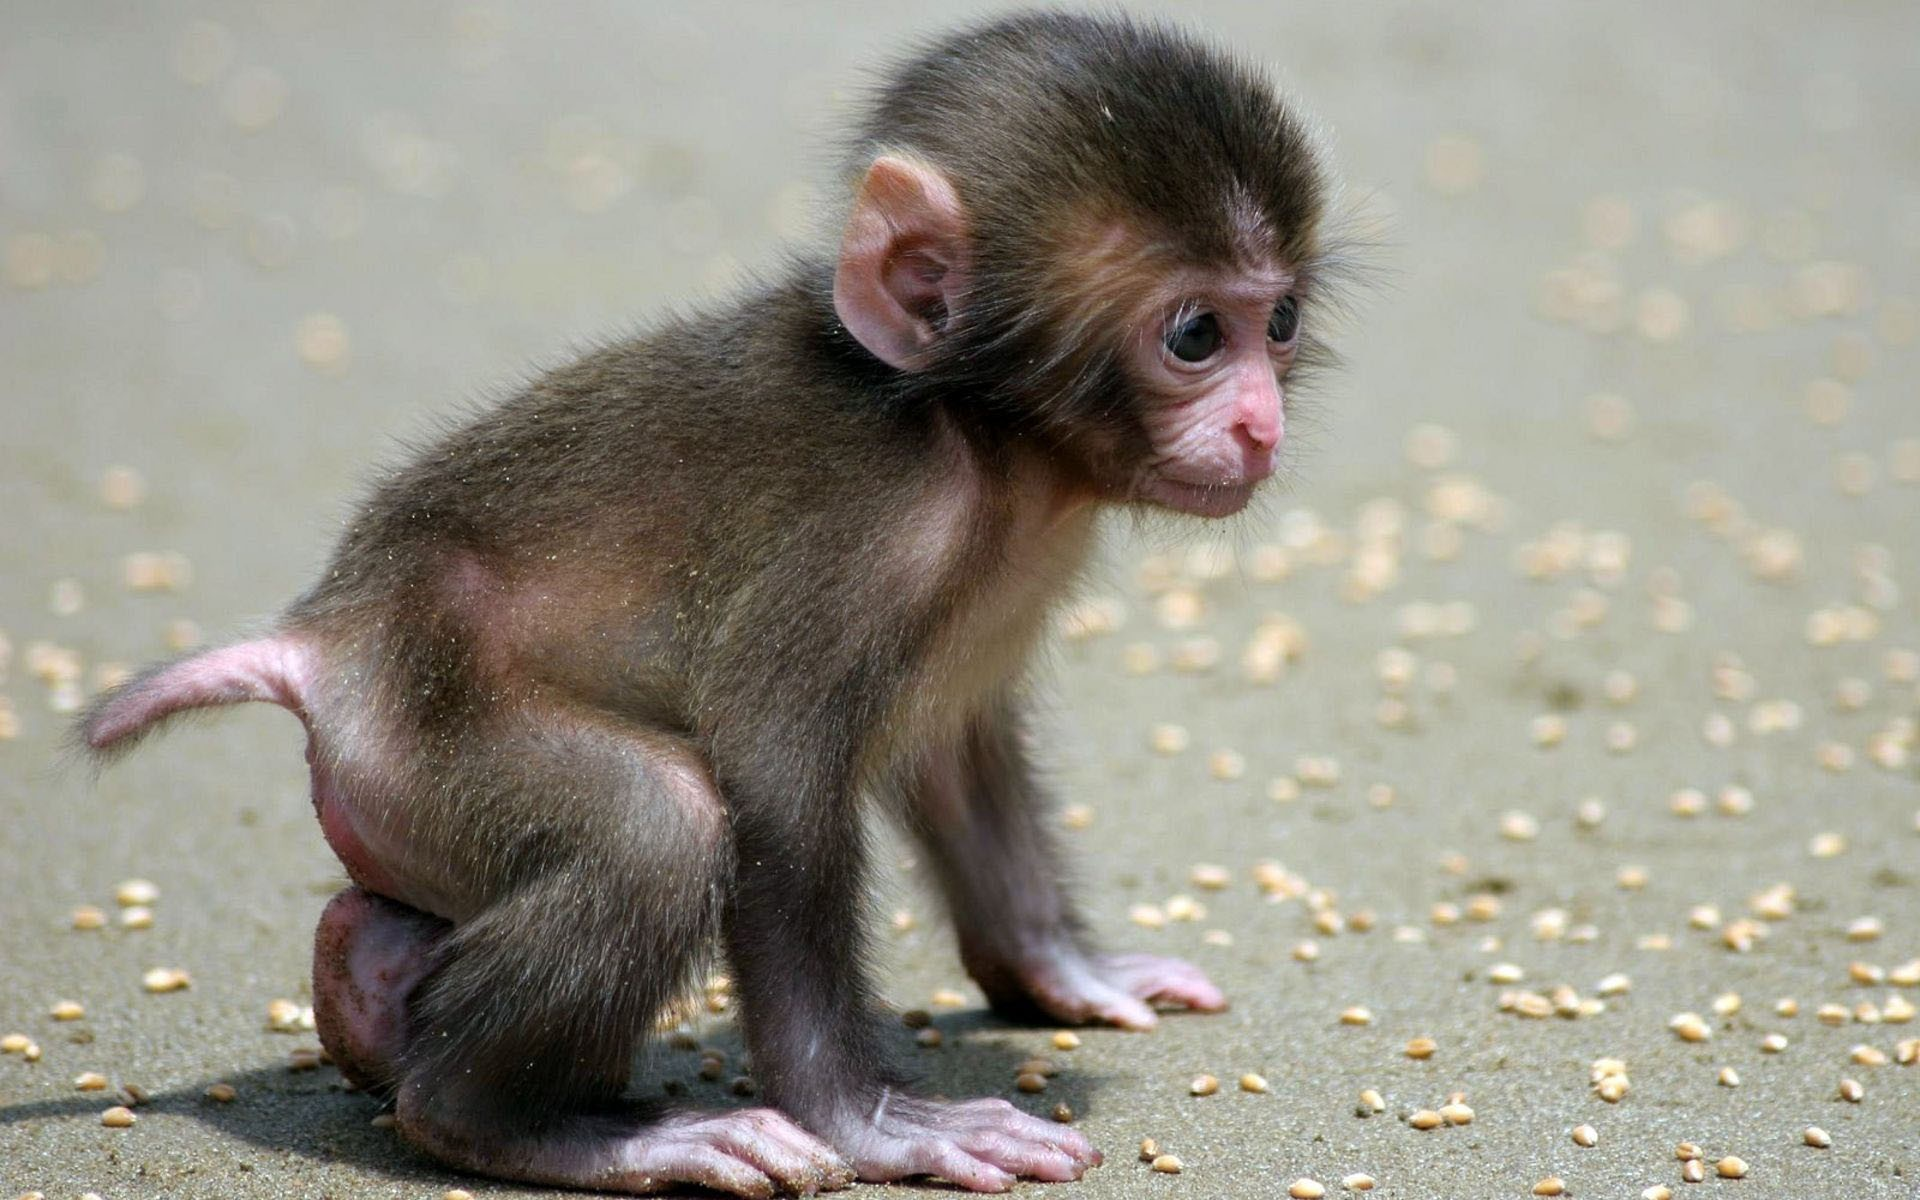 lovely small monkey baby picture download hd wallpapers of animal 1920x1200